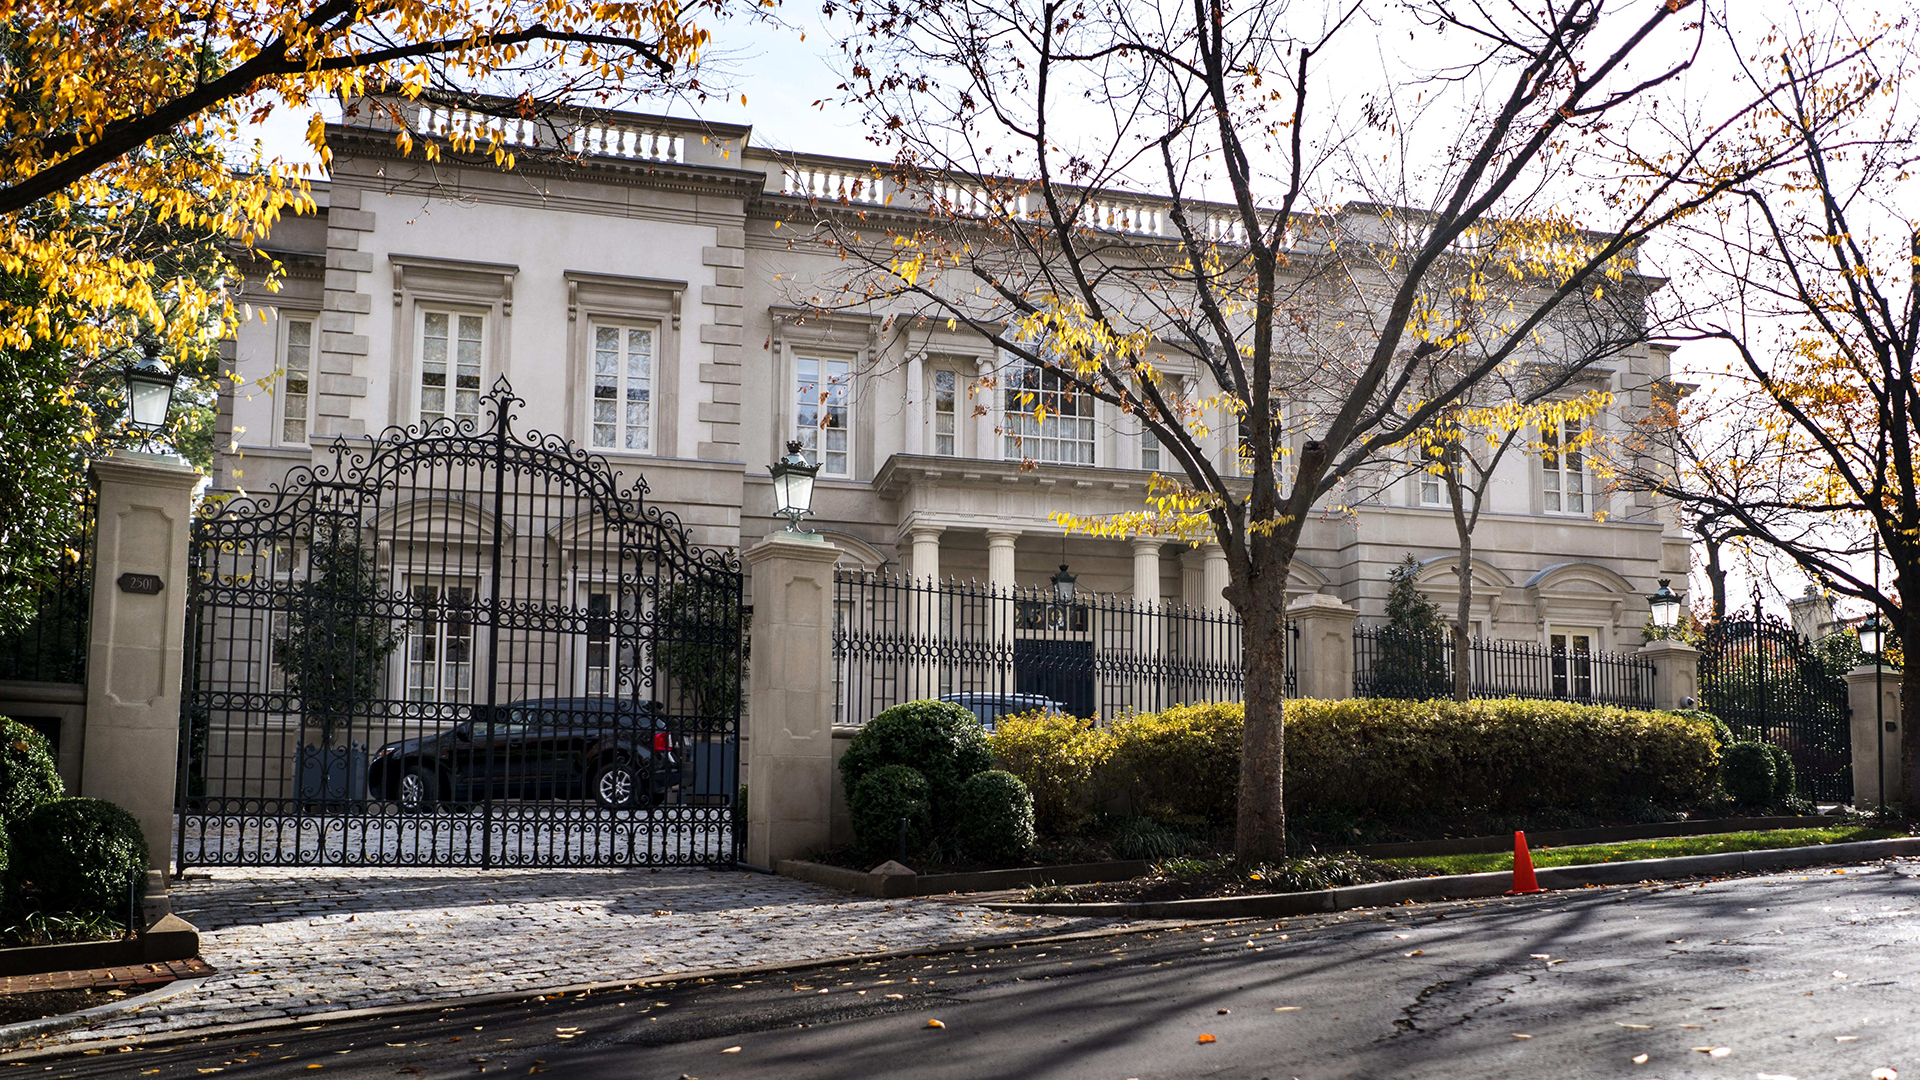 The Russian billionaire next door: Putin ally is tied to one of D.C.'s swankiest mansions